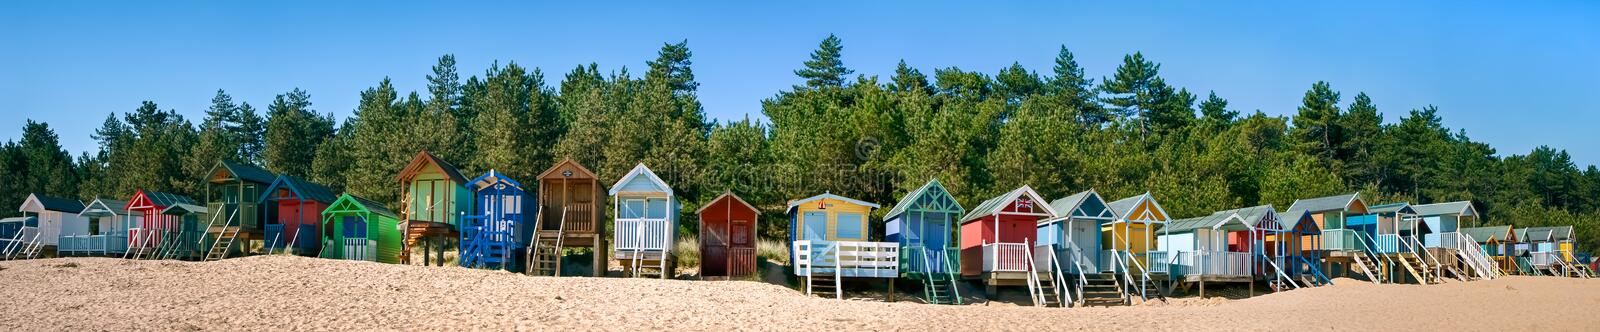 WELLS NEXT THE SEA, NORFOLK/UK - JUNE 3 : Some brightly coloured royalty free stock photos